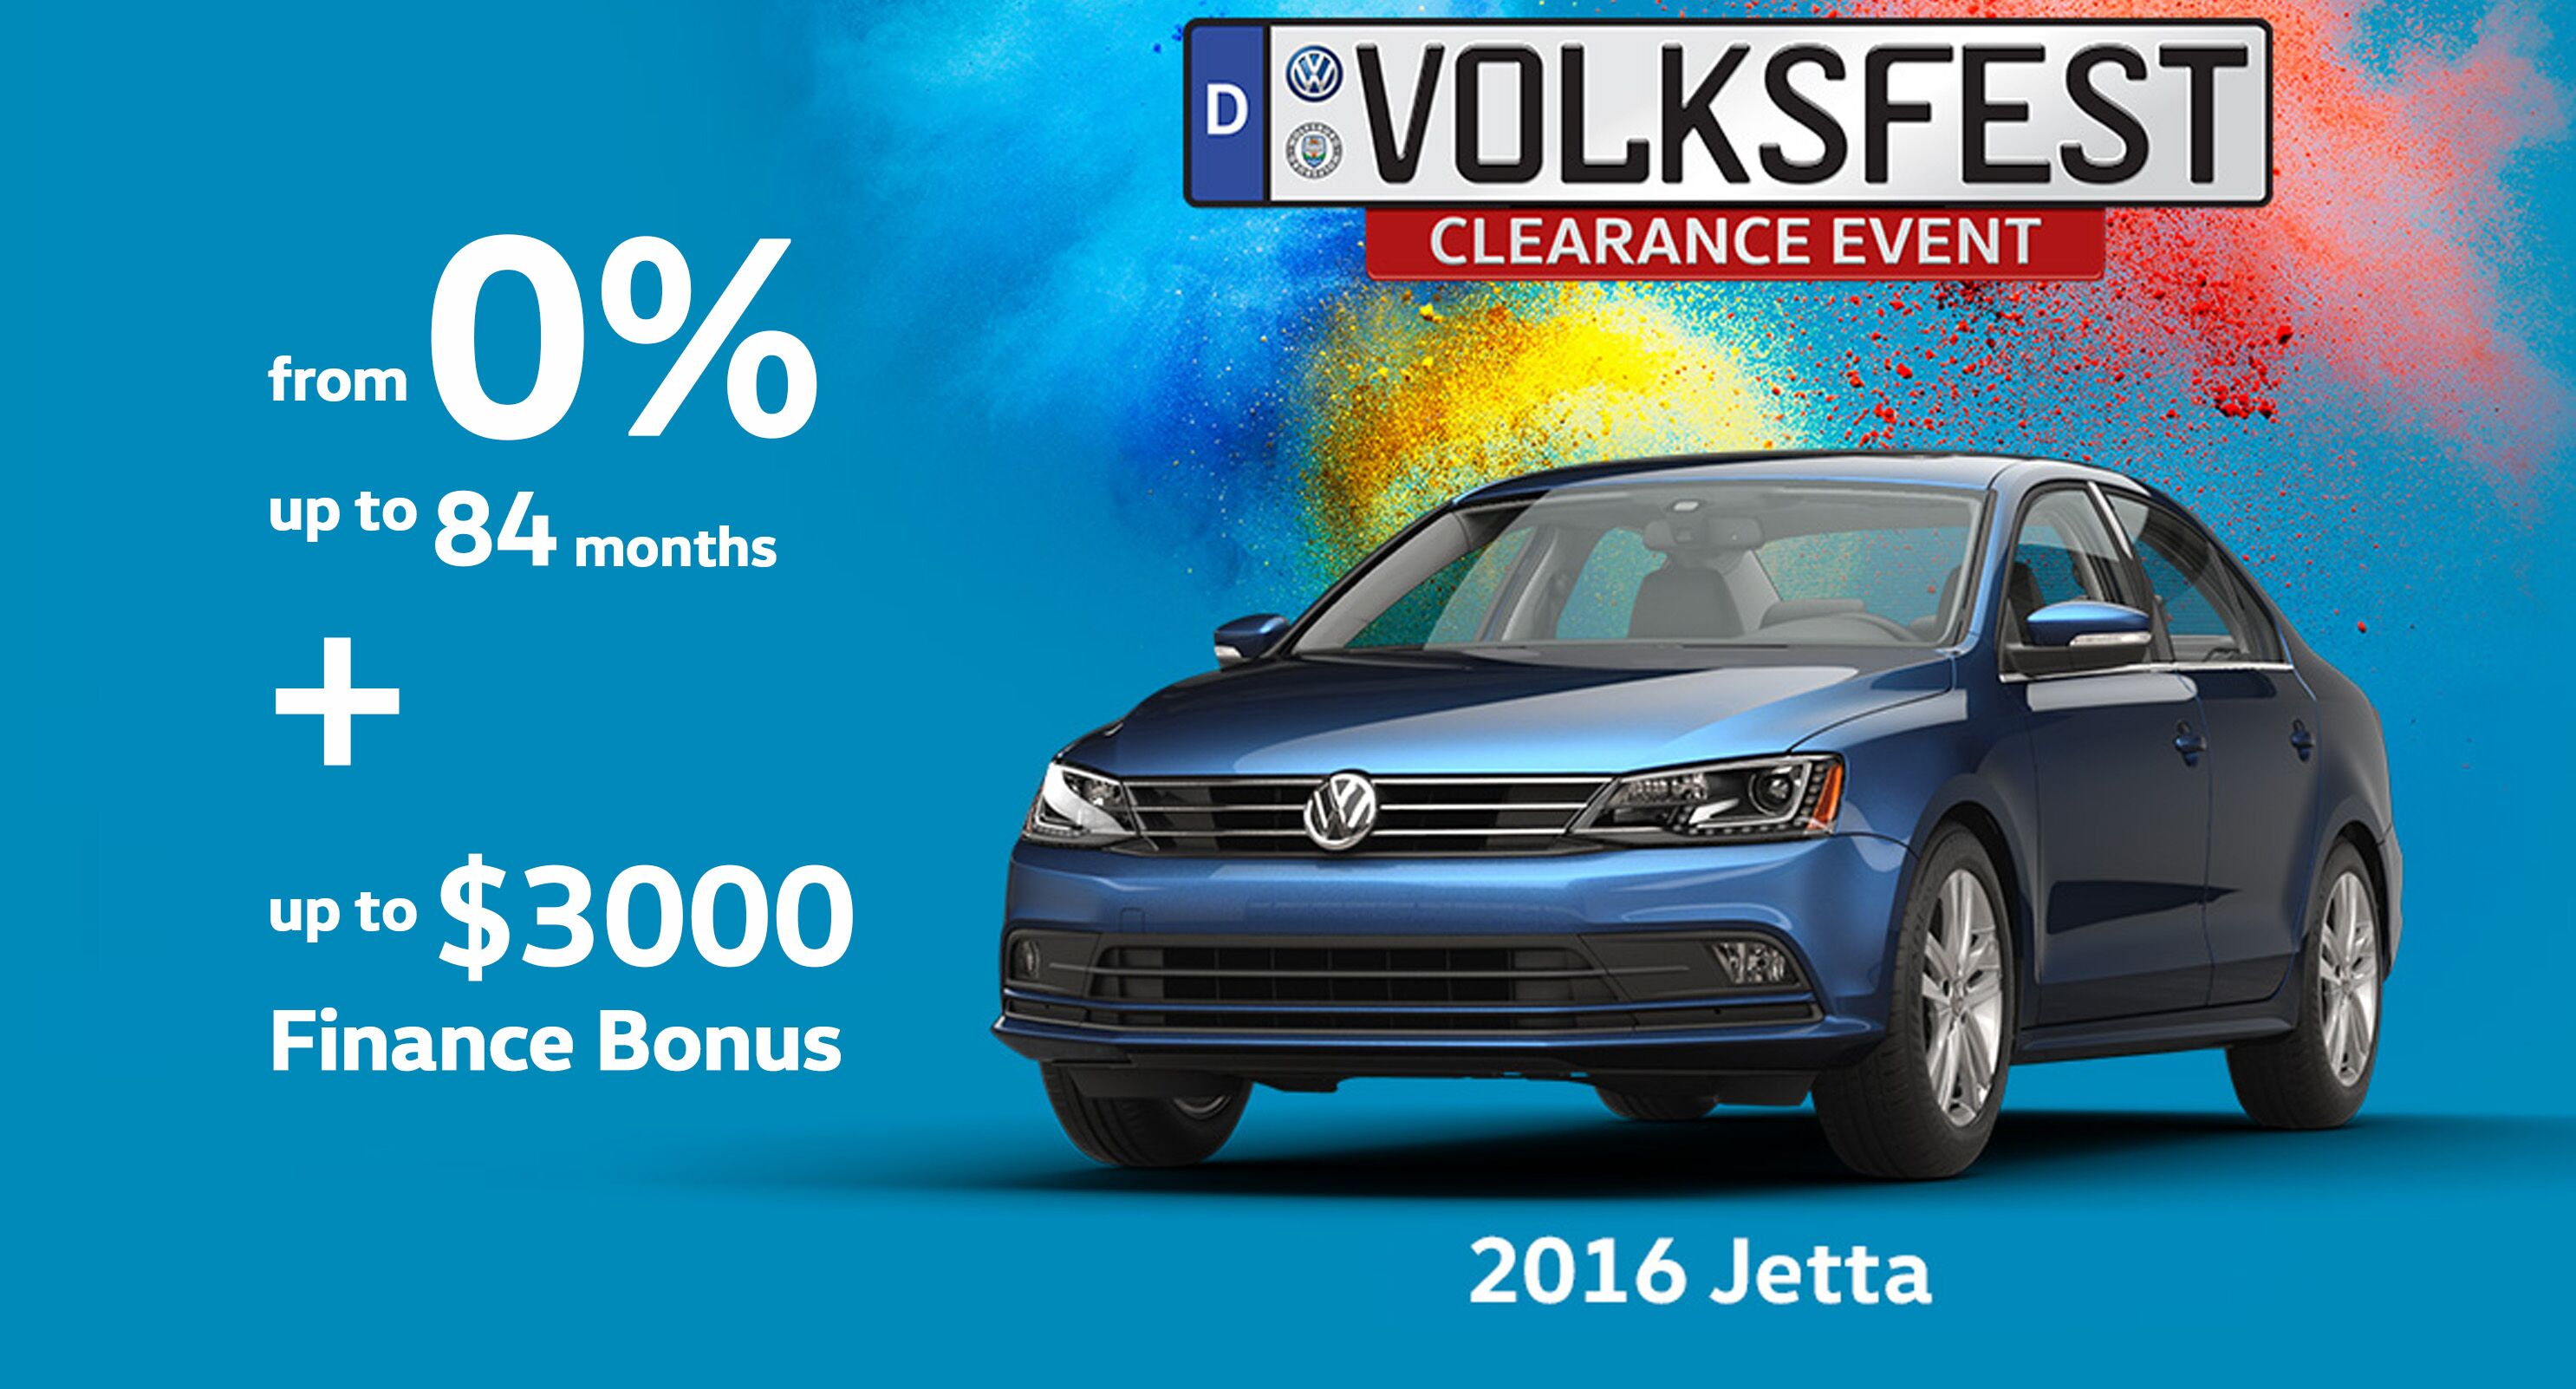 Car Inspection At End Of Lease Volkswagen